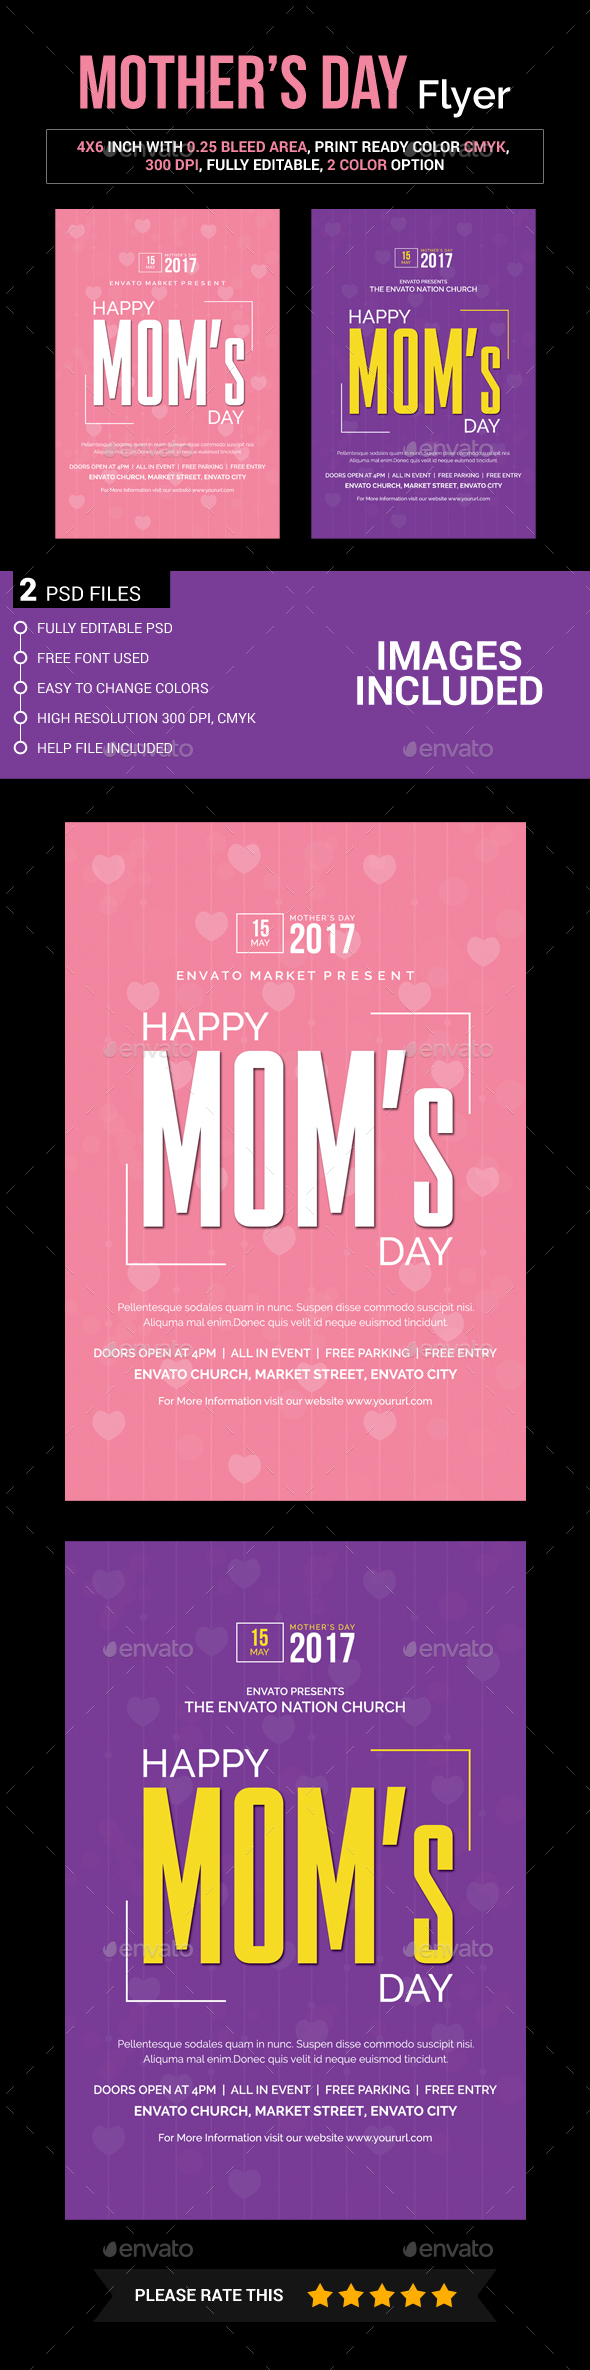 Mother's Day Flyer - Church Flyers